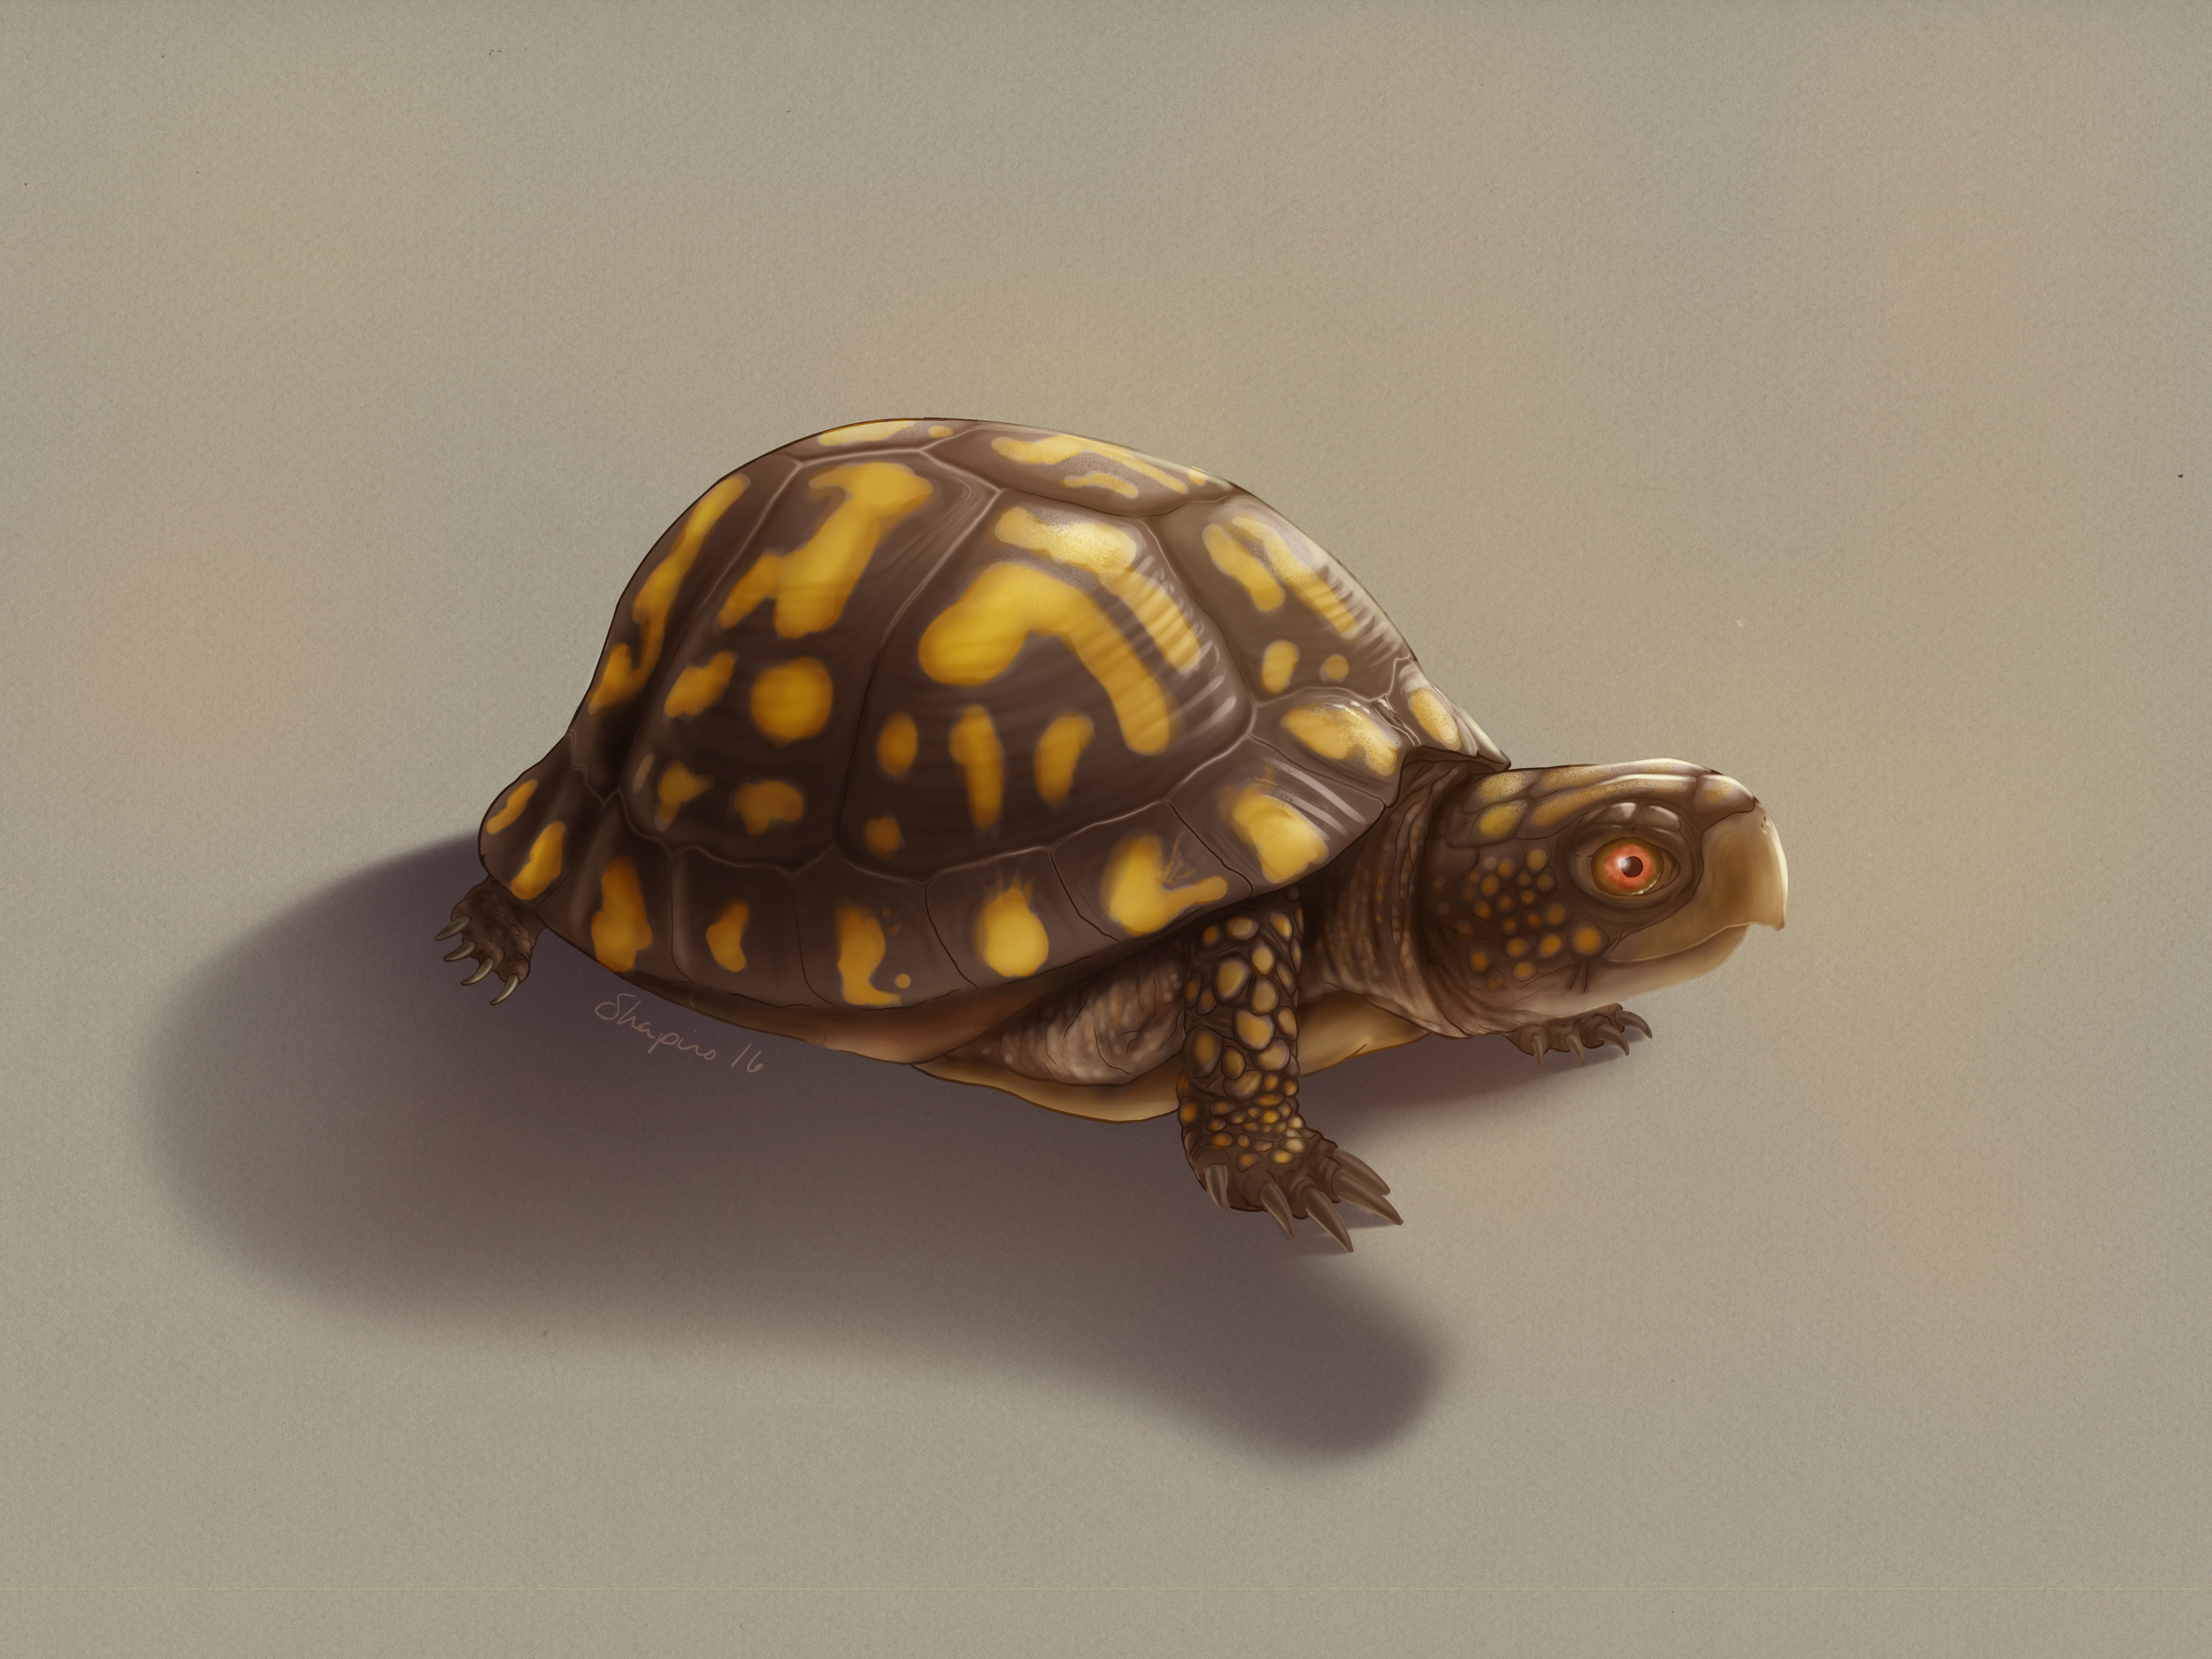 Box turtle, Terrapene carolina